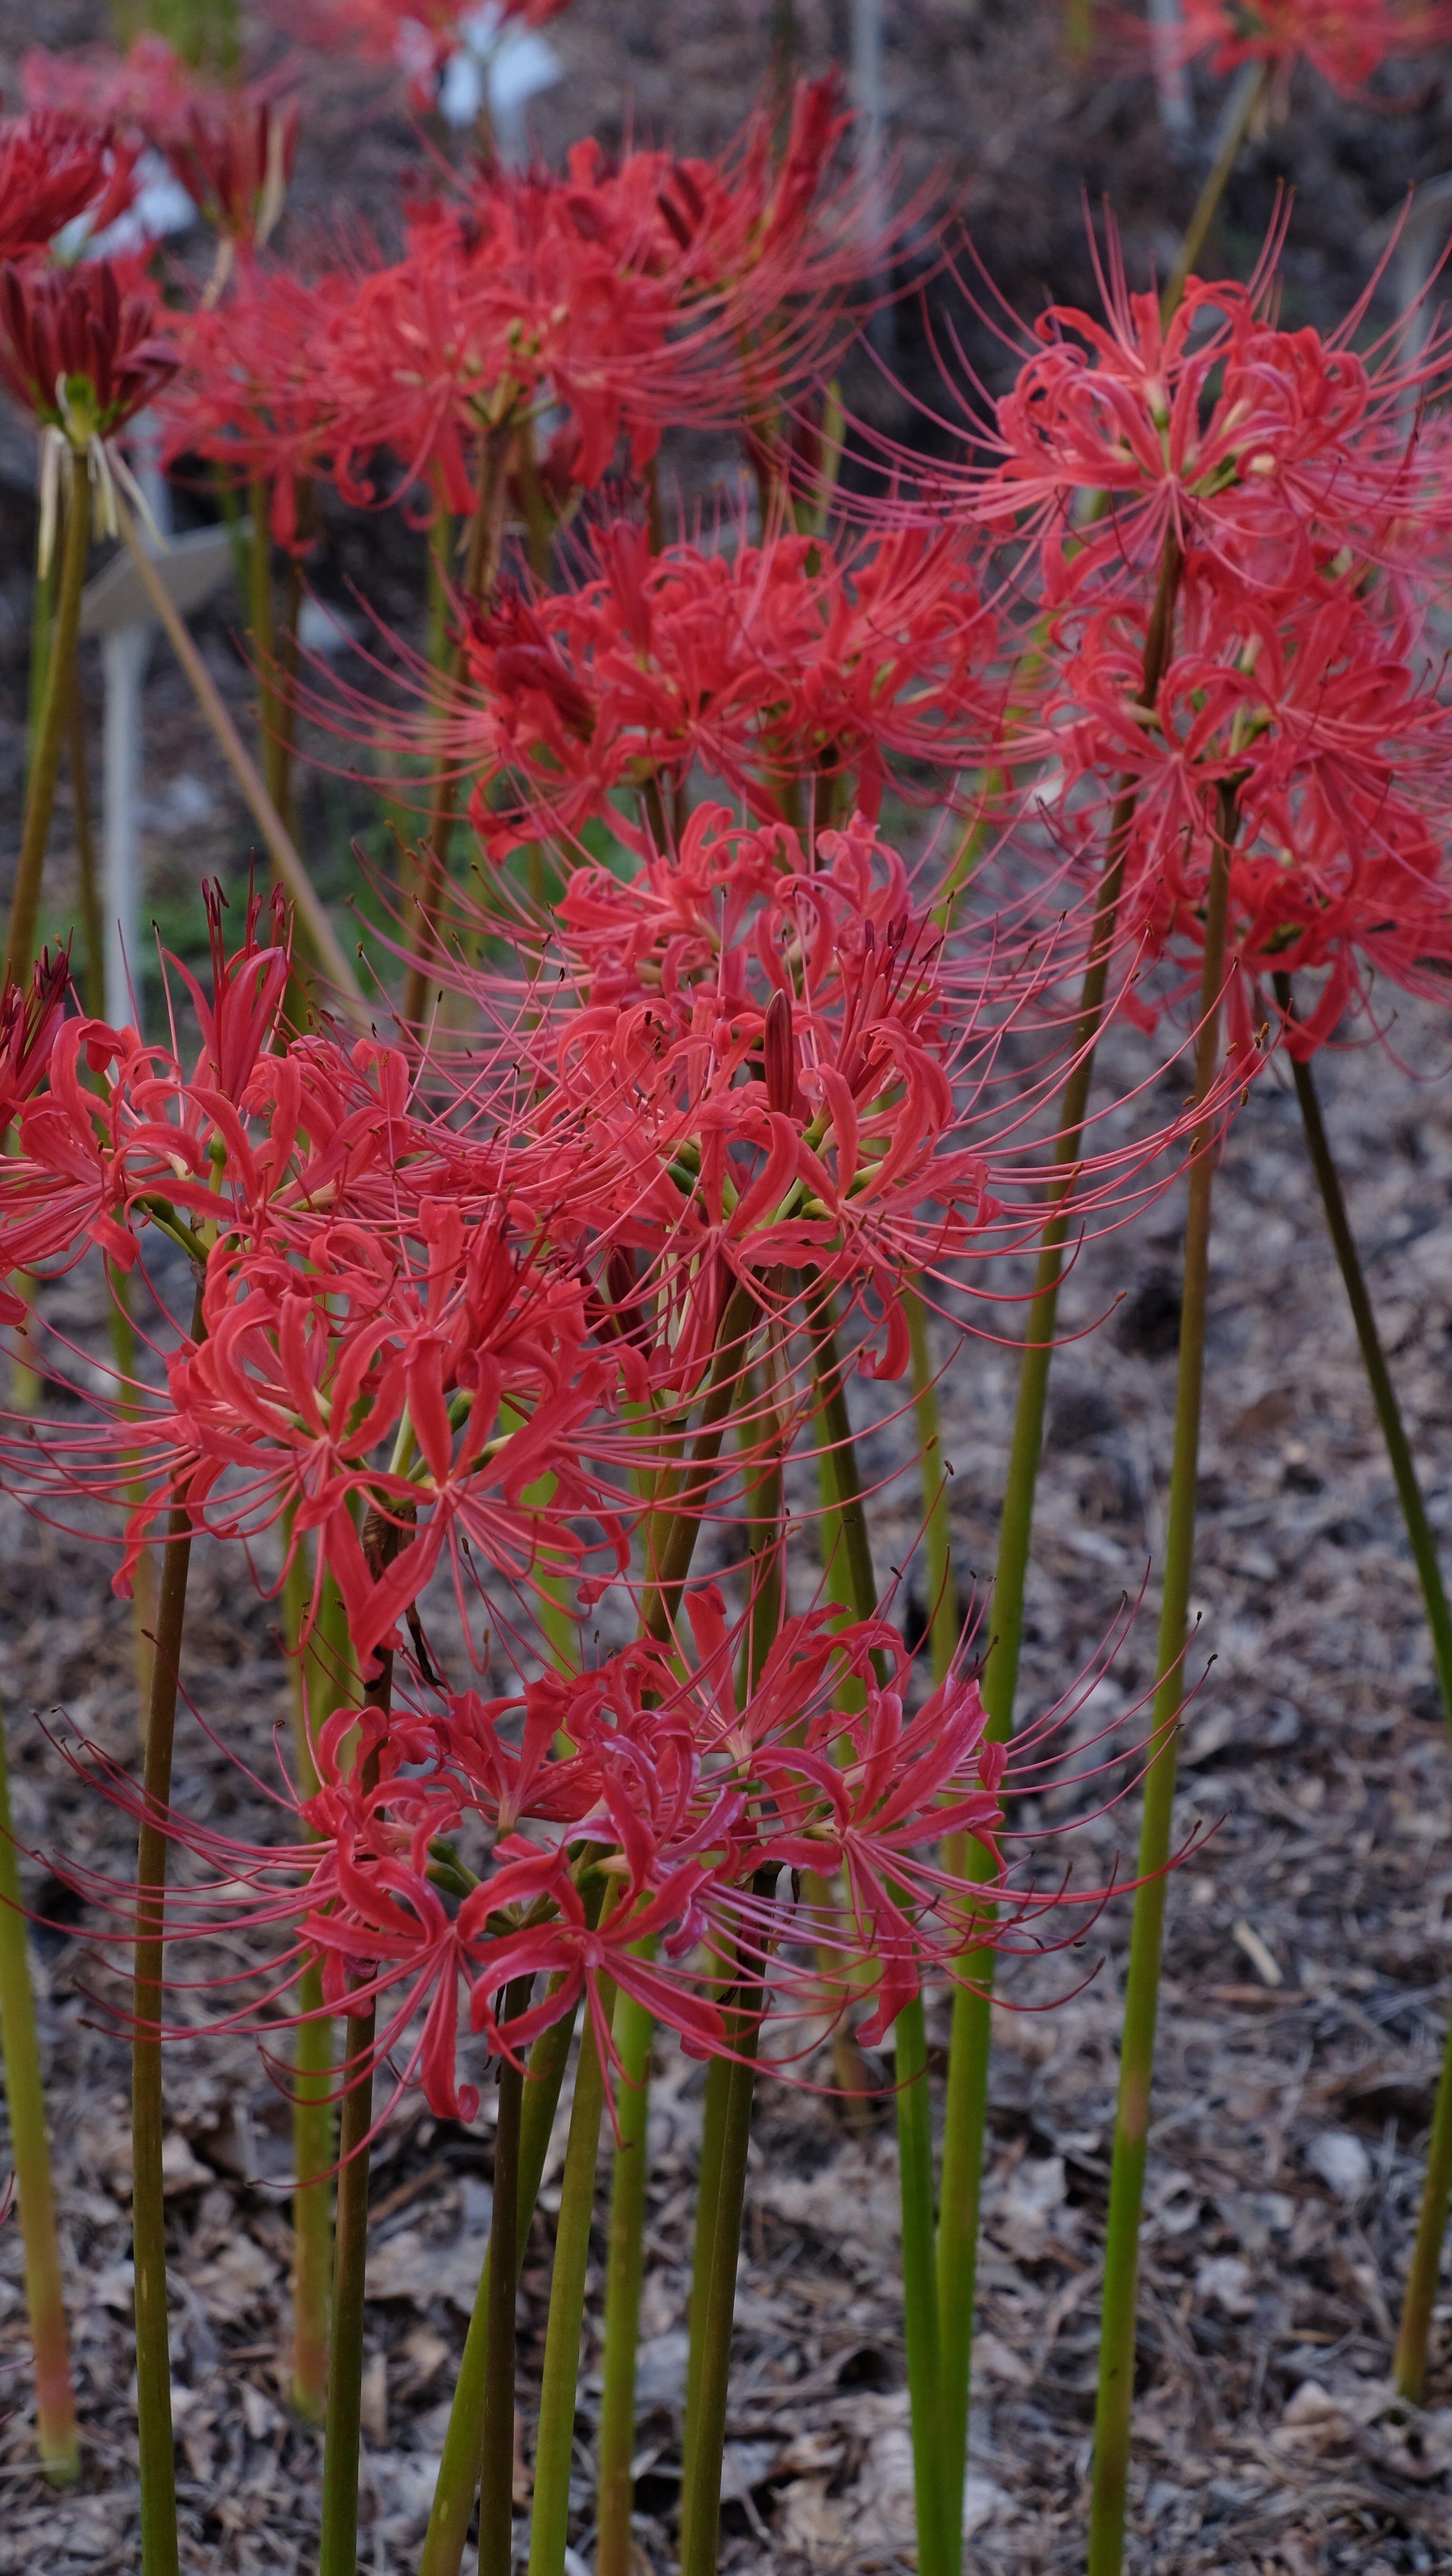 Lycoris radiata var. radiata 'Modern Japanese' @ JLBG - a typically imported selection from Japan, named by Phil Adams to distinguish it from other selections